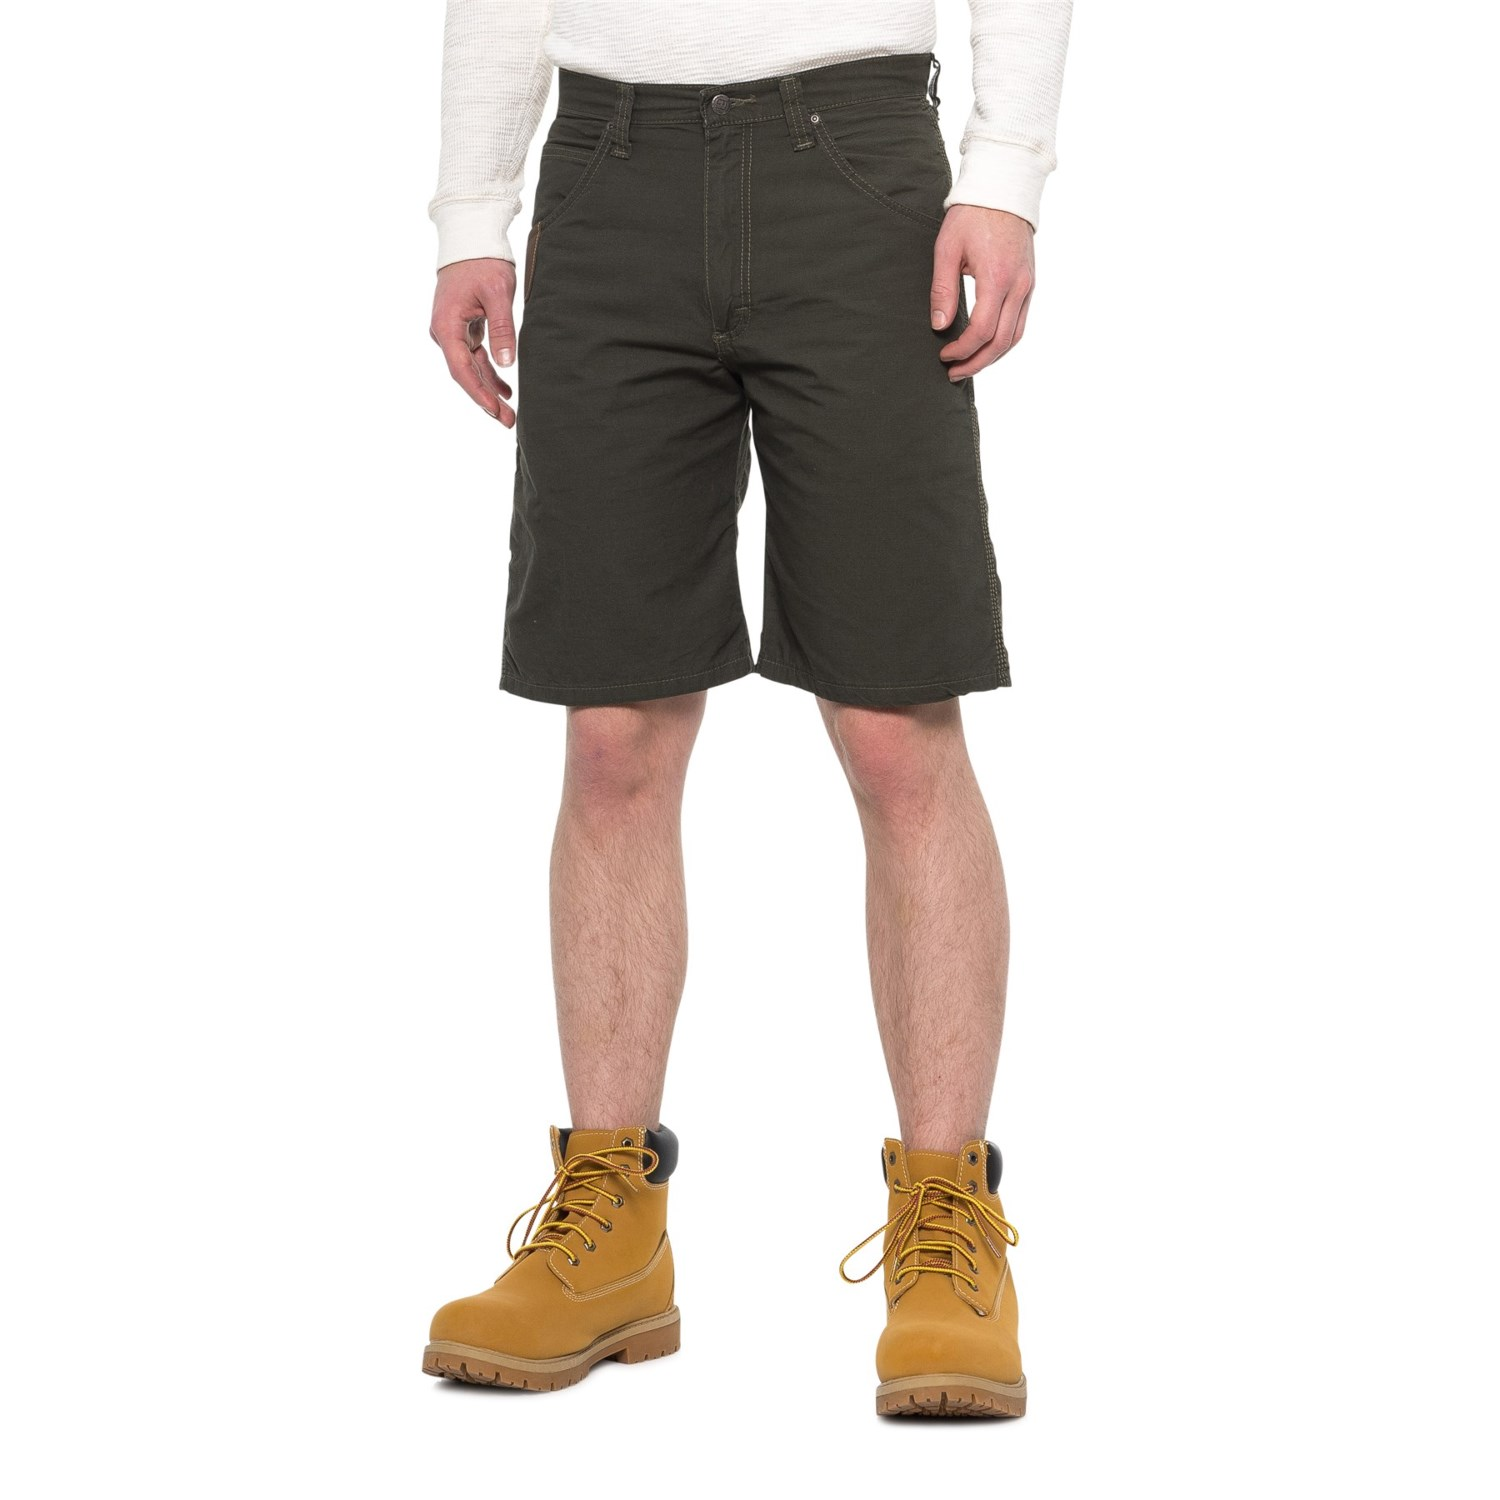 c18b5126013 Riggs Cargo Shorts (For Men) - Save 59%